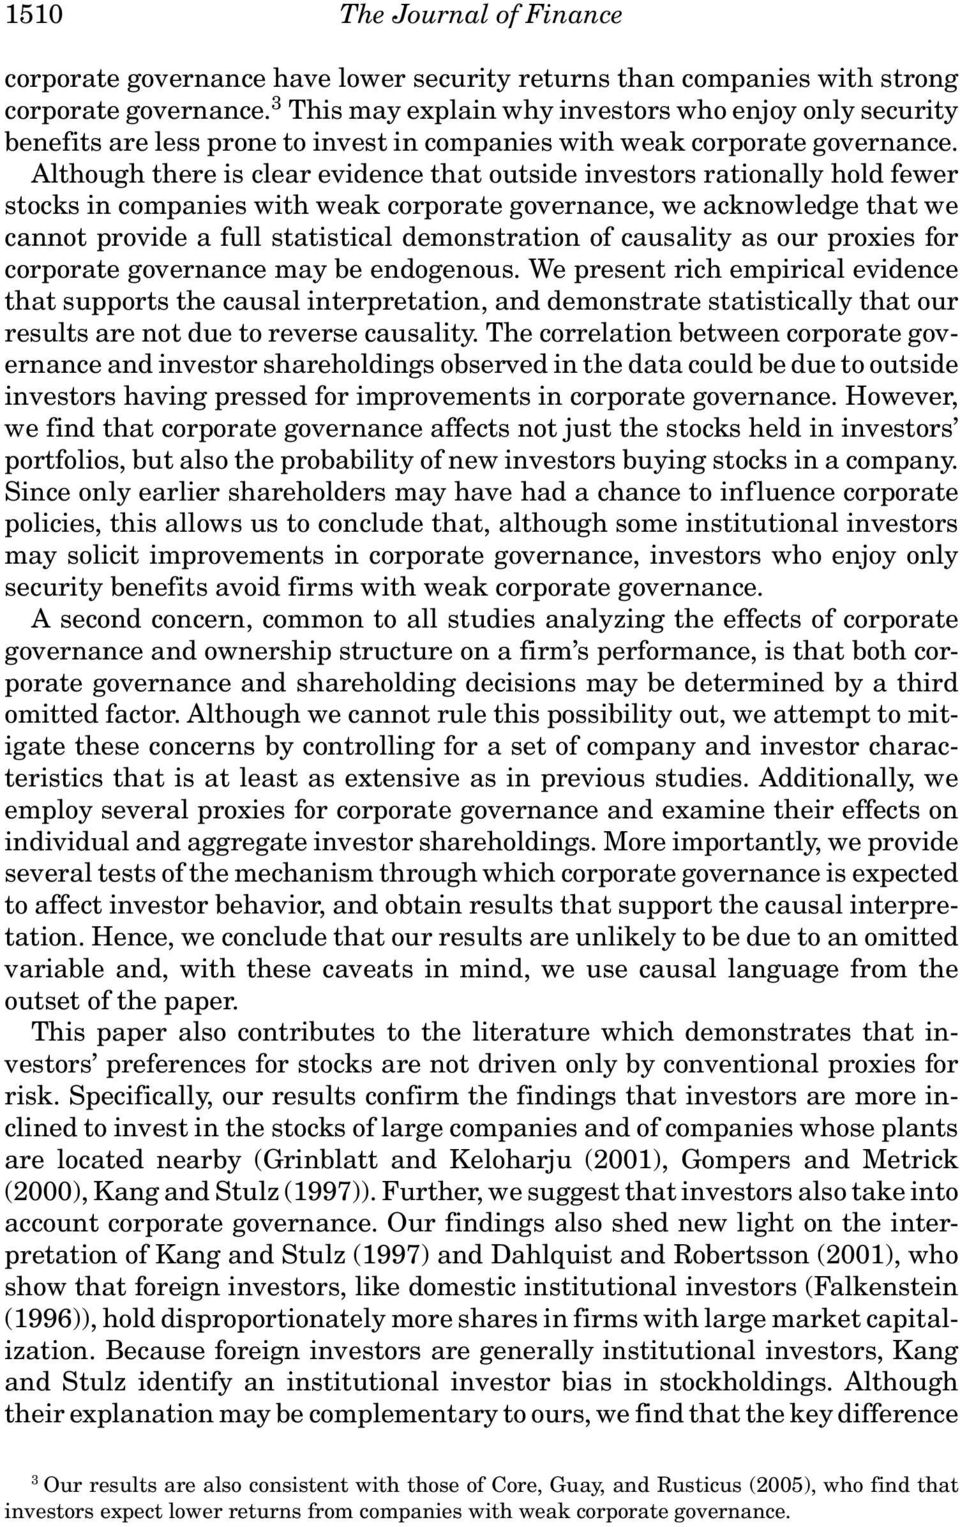 Although there is clear evidence that outside investors rationally hold fewer stocks in companies with weak corporate governance, we acknowledge that we cannot provide a full statistical